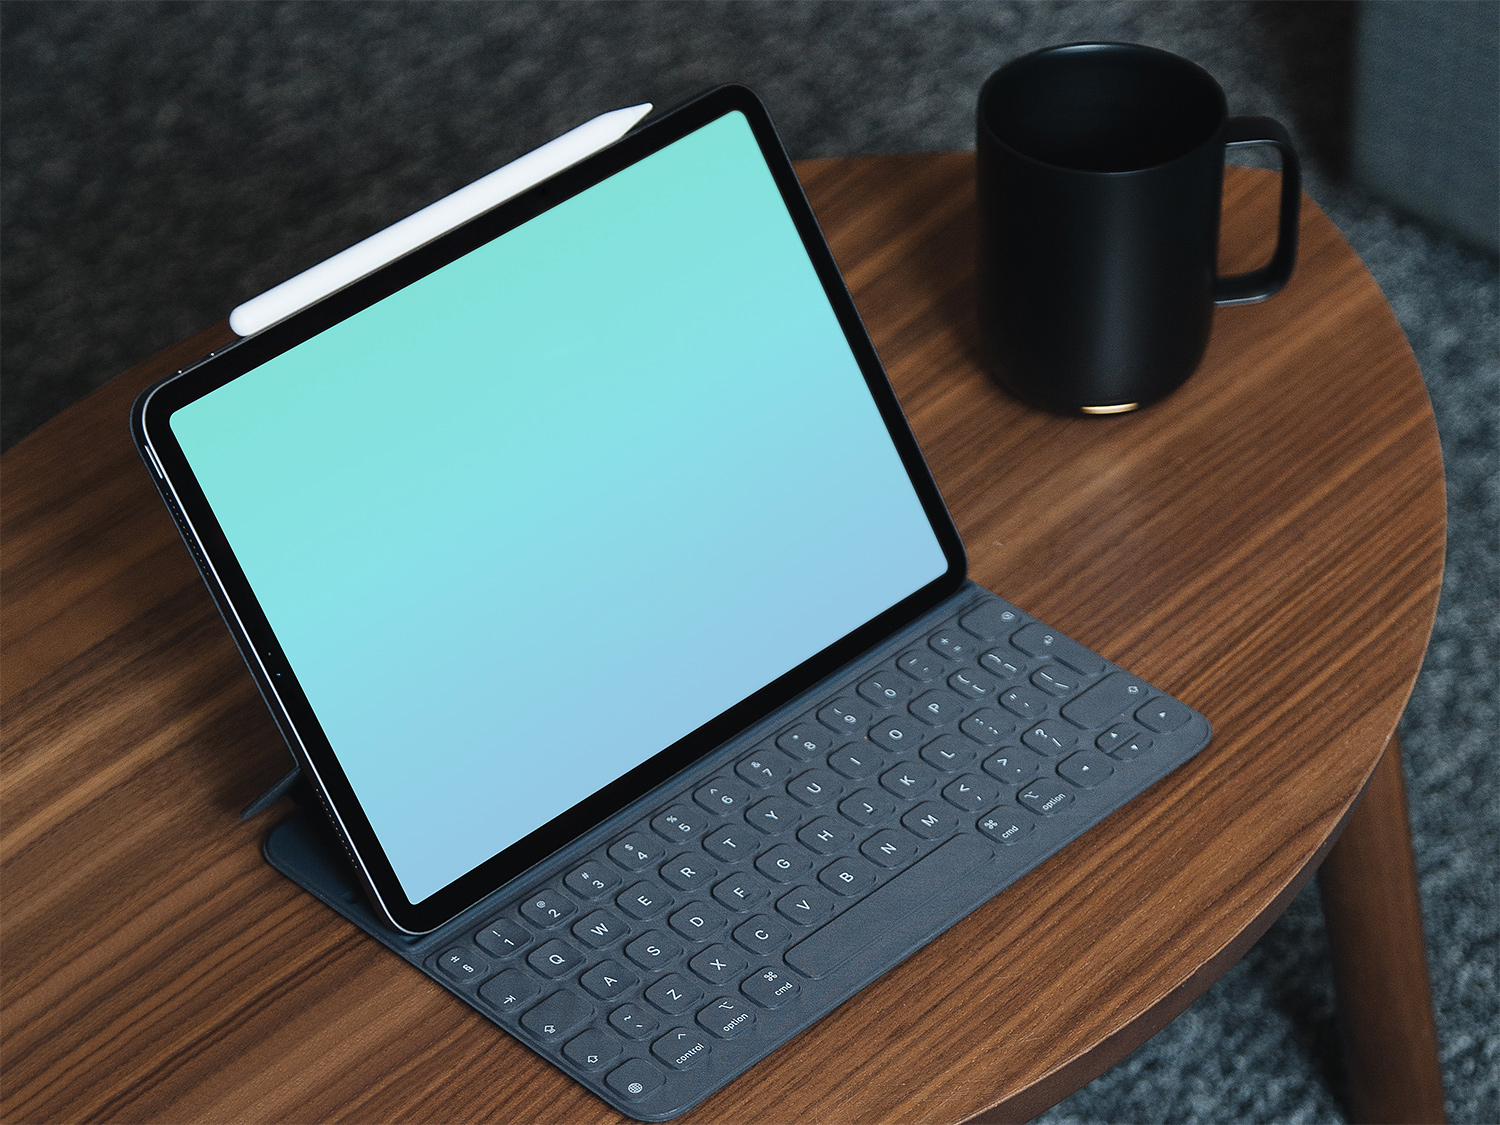 Free New iPad Pro Mockup with Keyboard